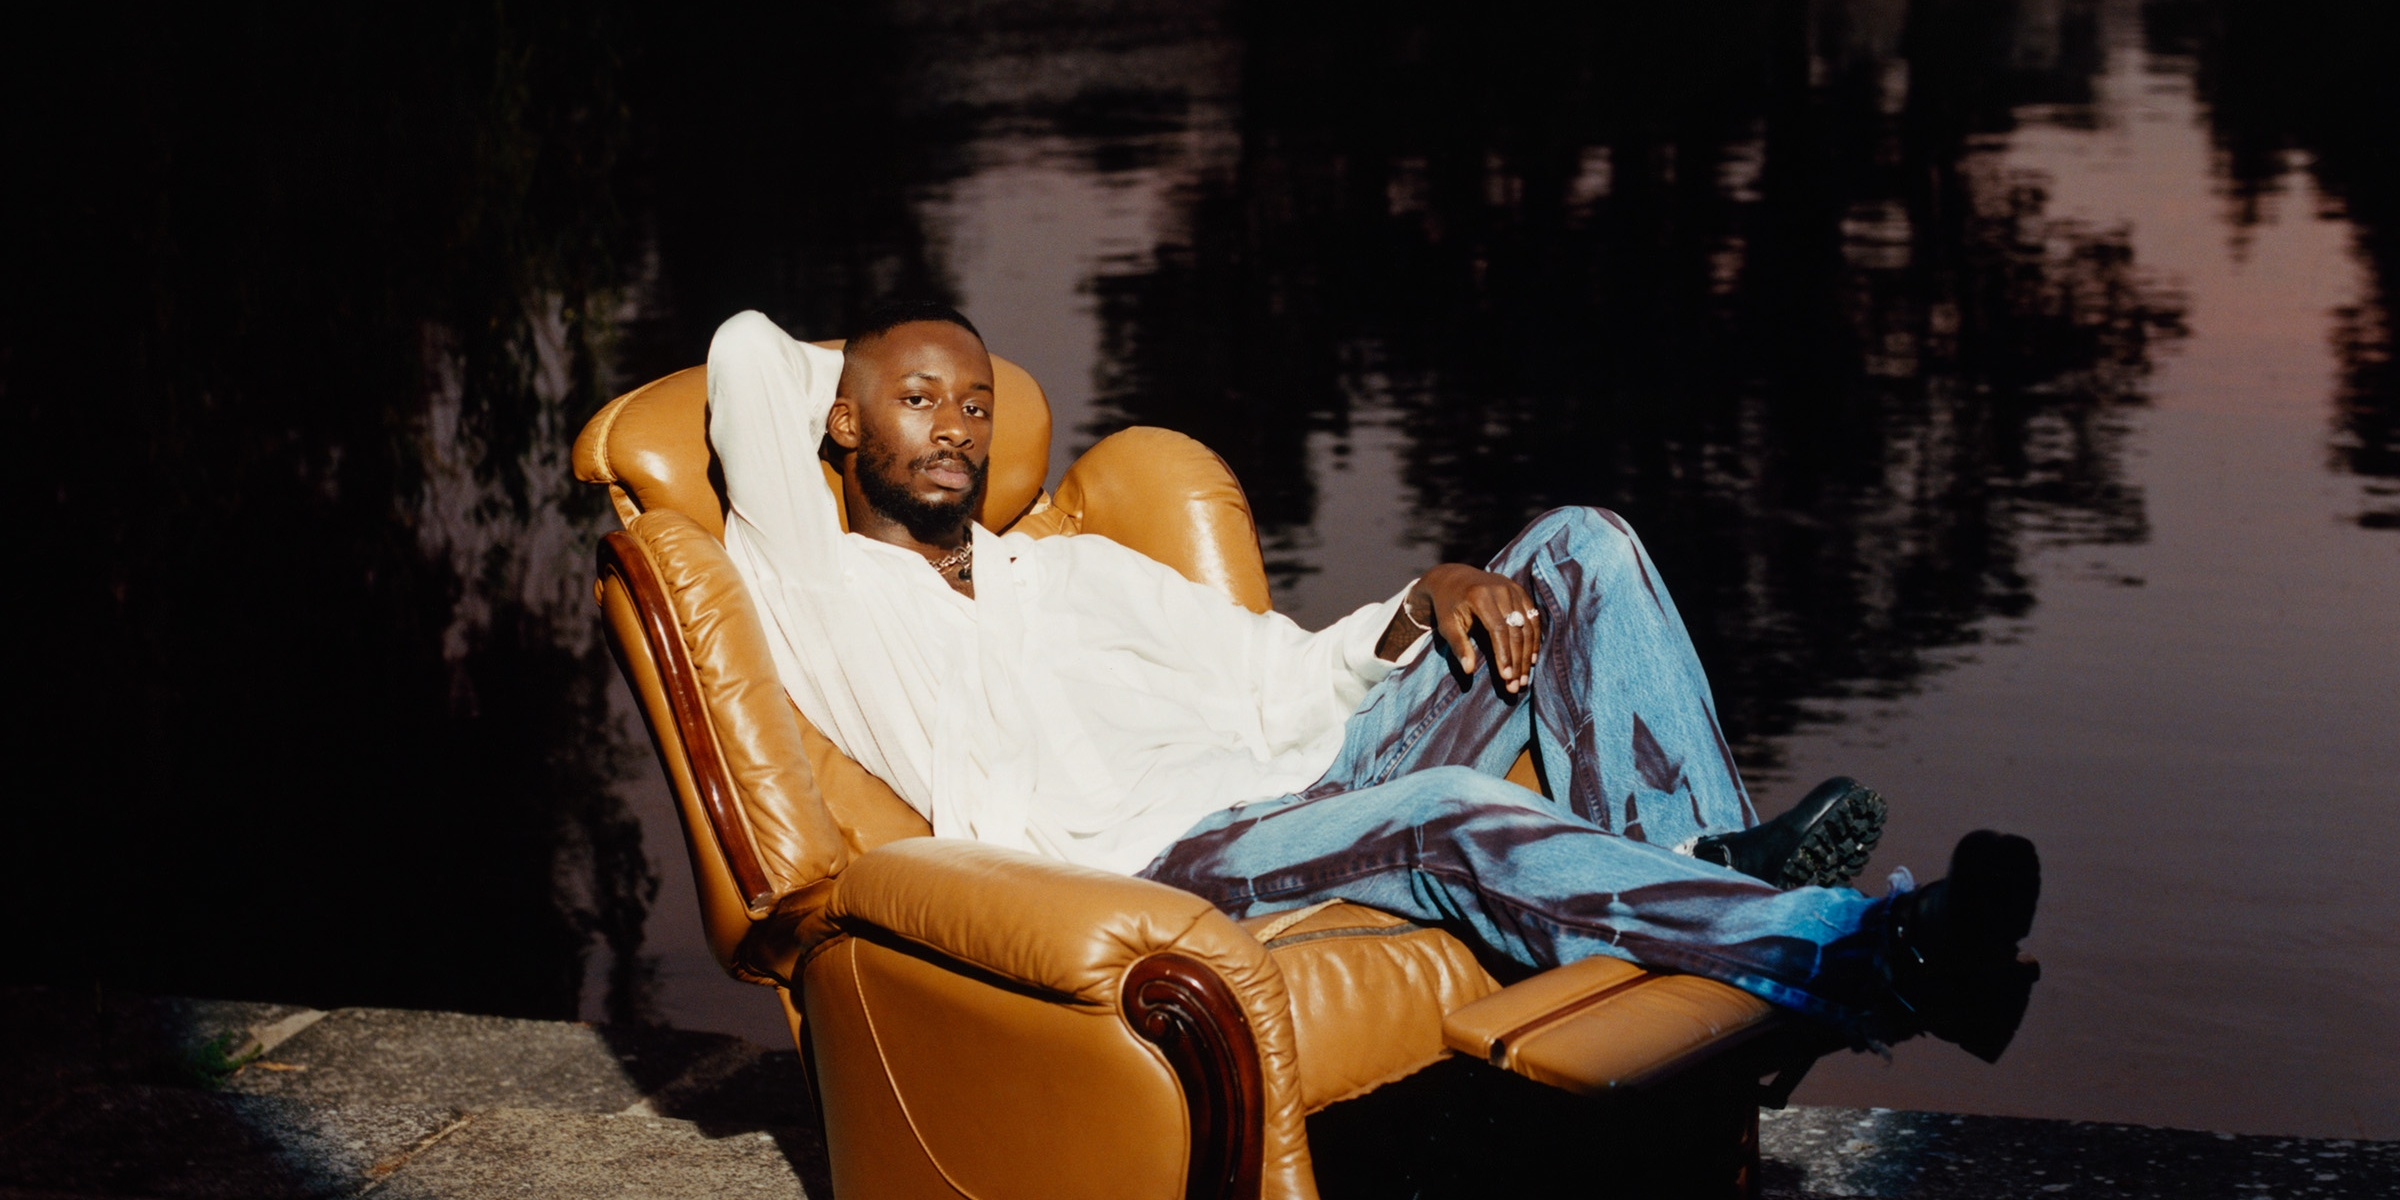 GoldLink releases new single, 'Joke Ting' with Ari Pensmith, announces upcoming album – listen